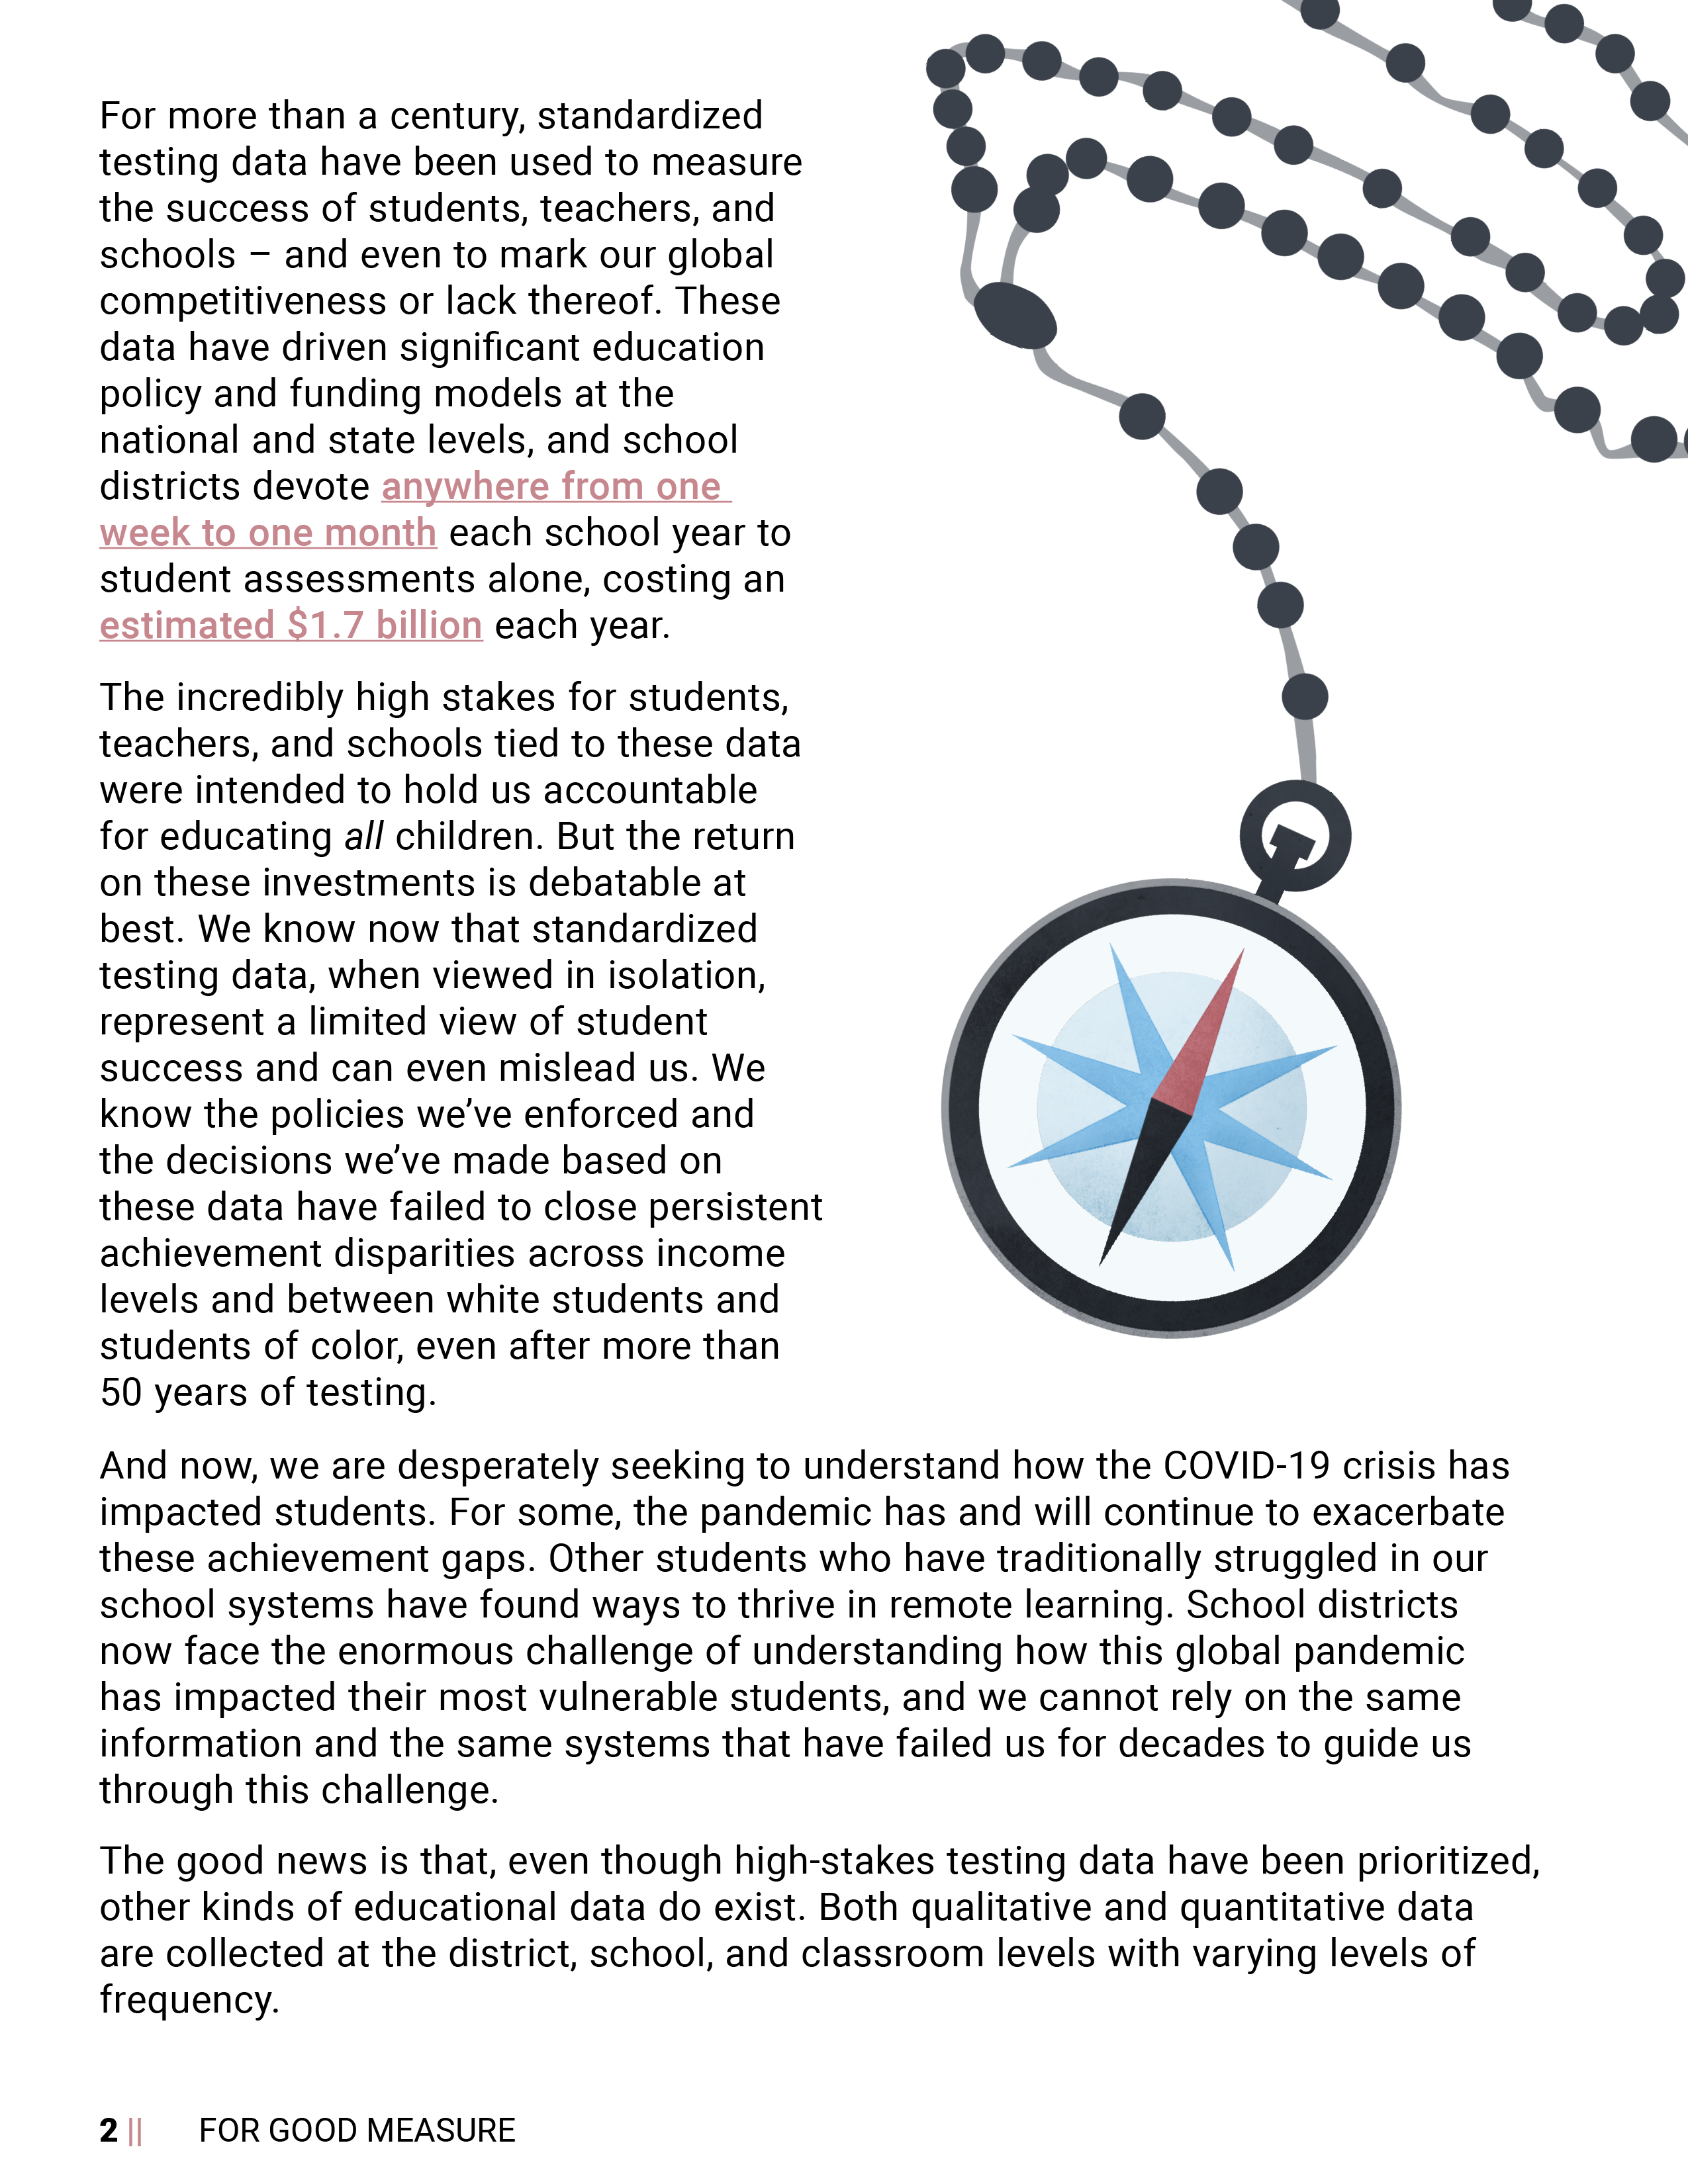 For Good Measure - Data Culture Guide page 2